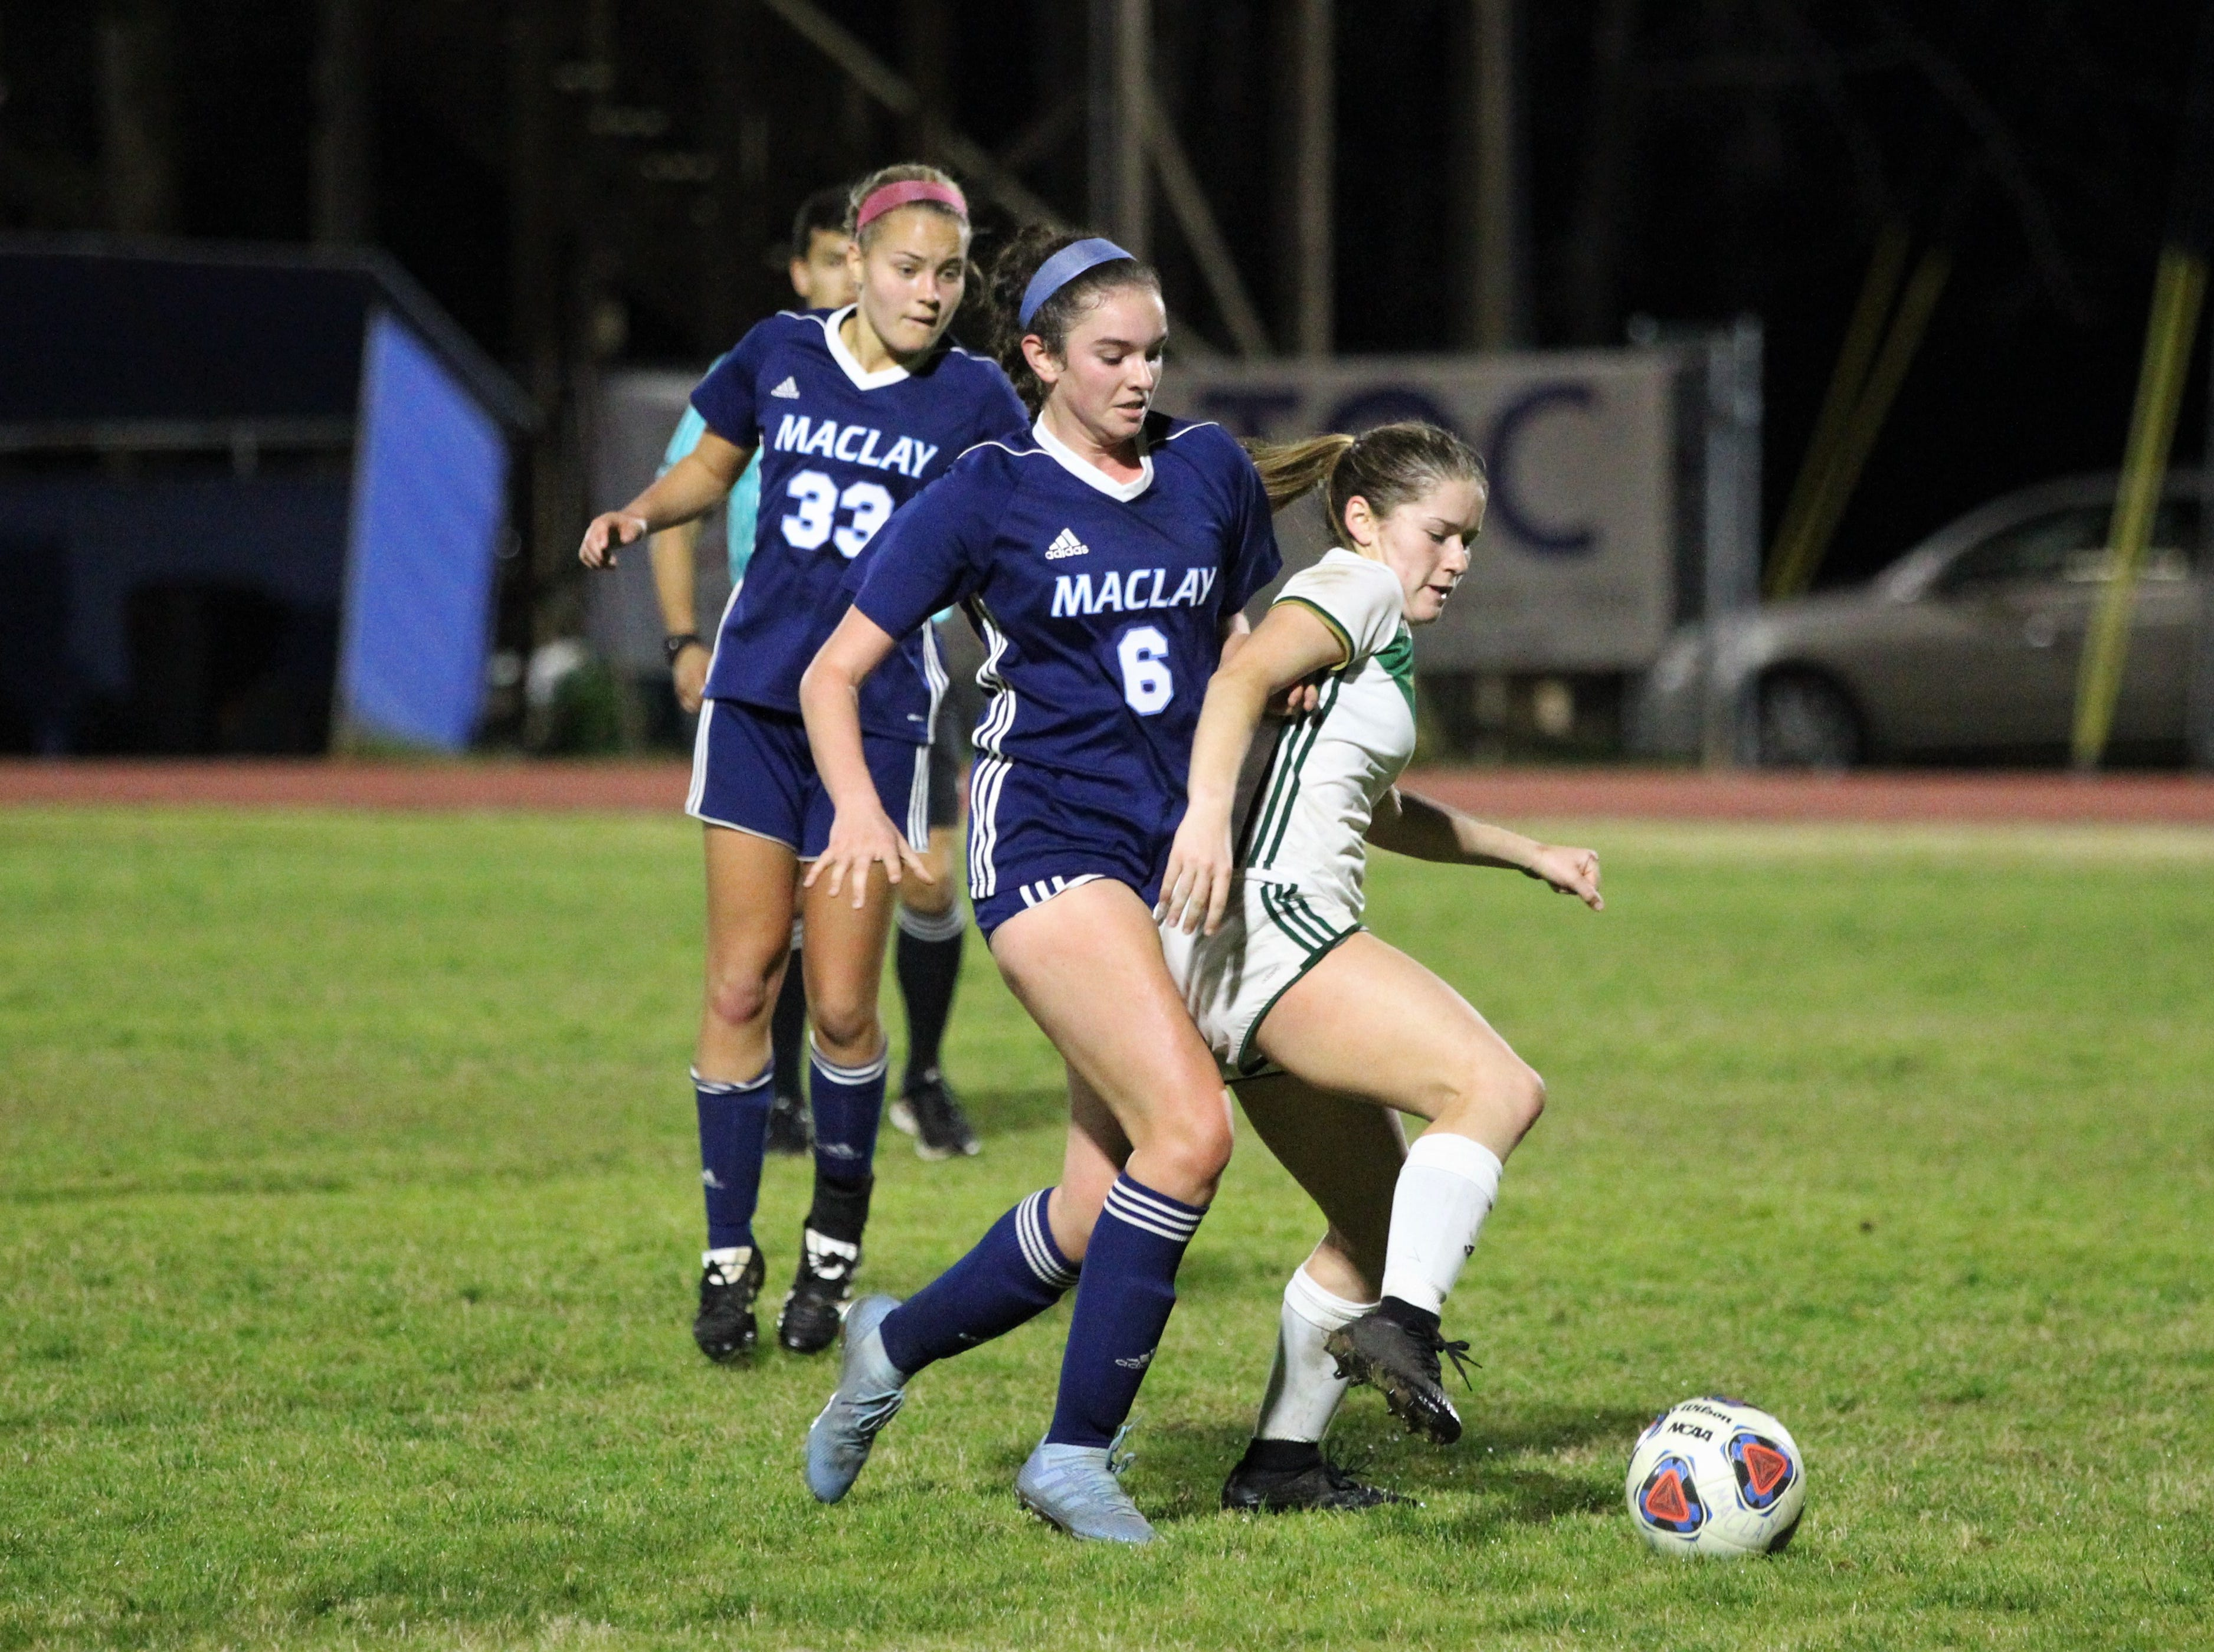 Maclay's Laura Kathryn Foote tries to keep her opponent from turning upfield as Maclay's girls soccer team beat St. Joseph Academy 4-0 in a Region 1-1A quarterfinal on Jan. 5, 2019.